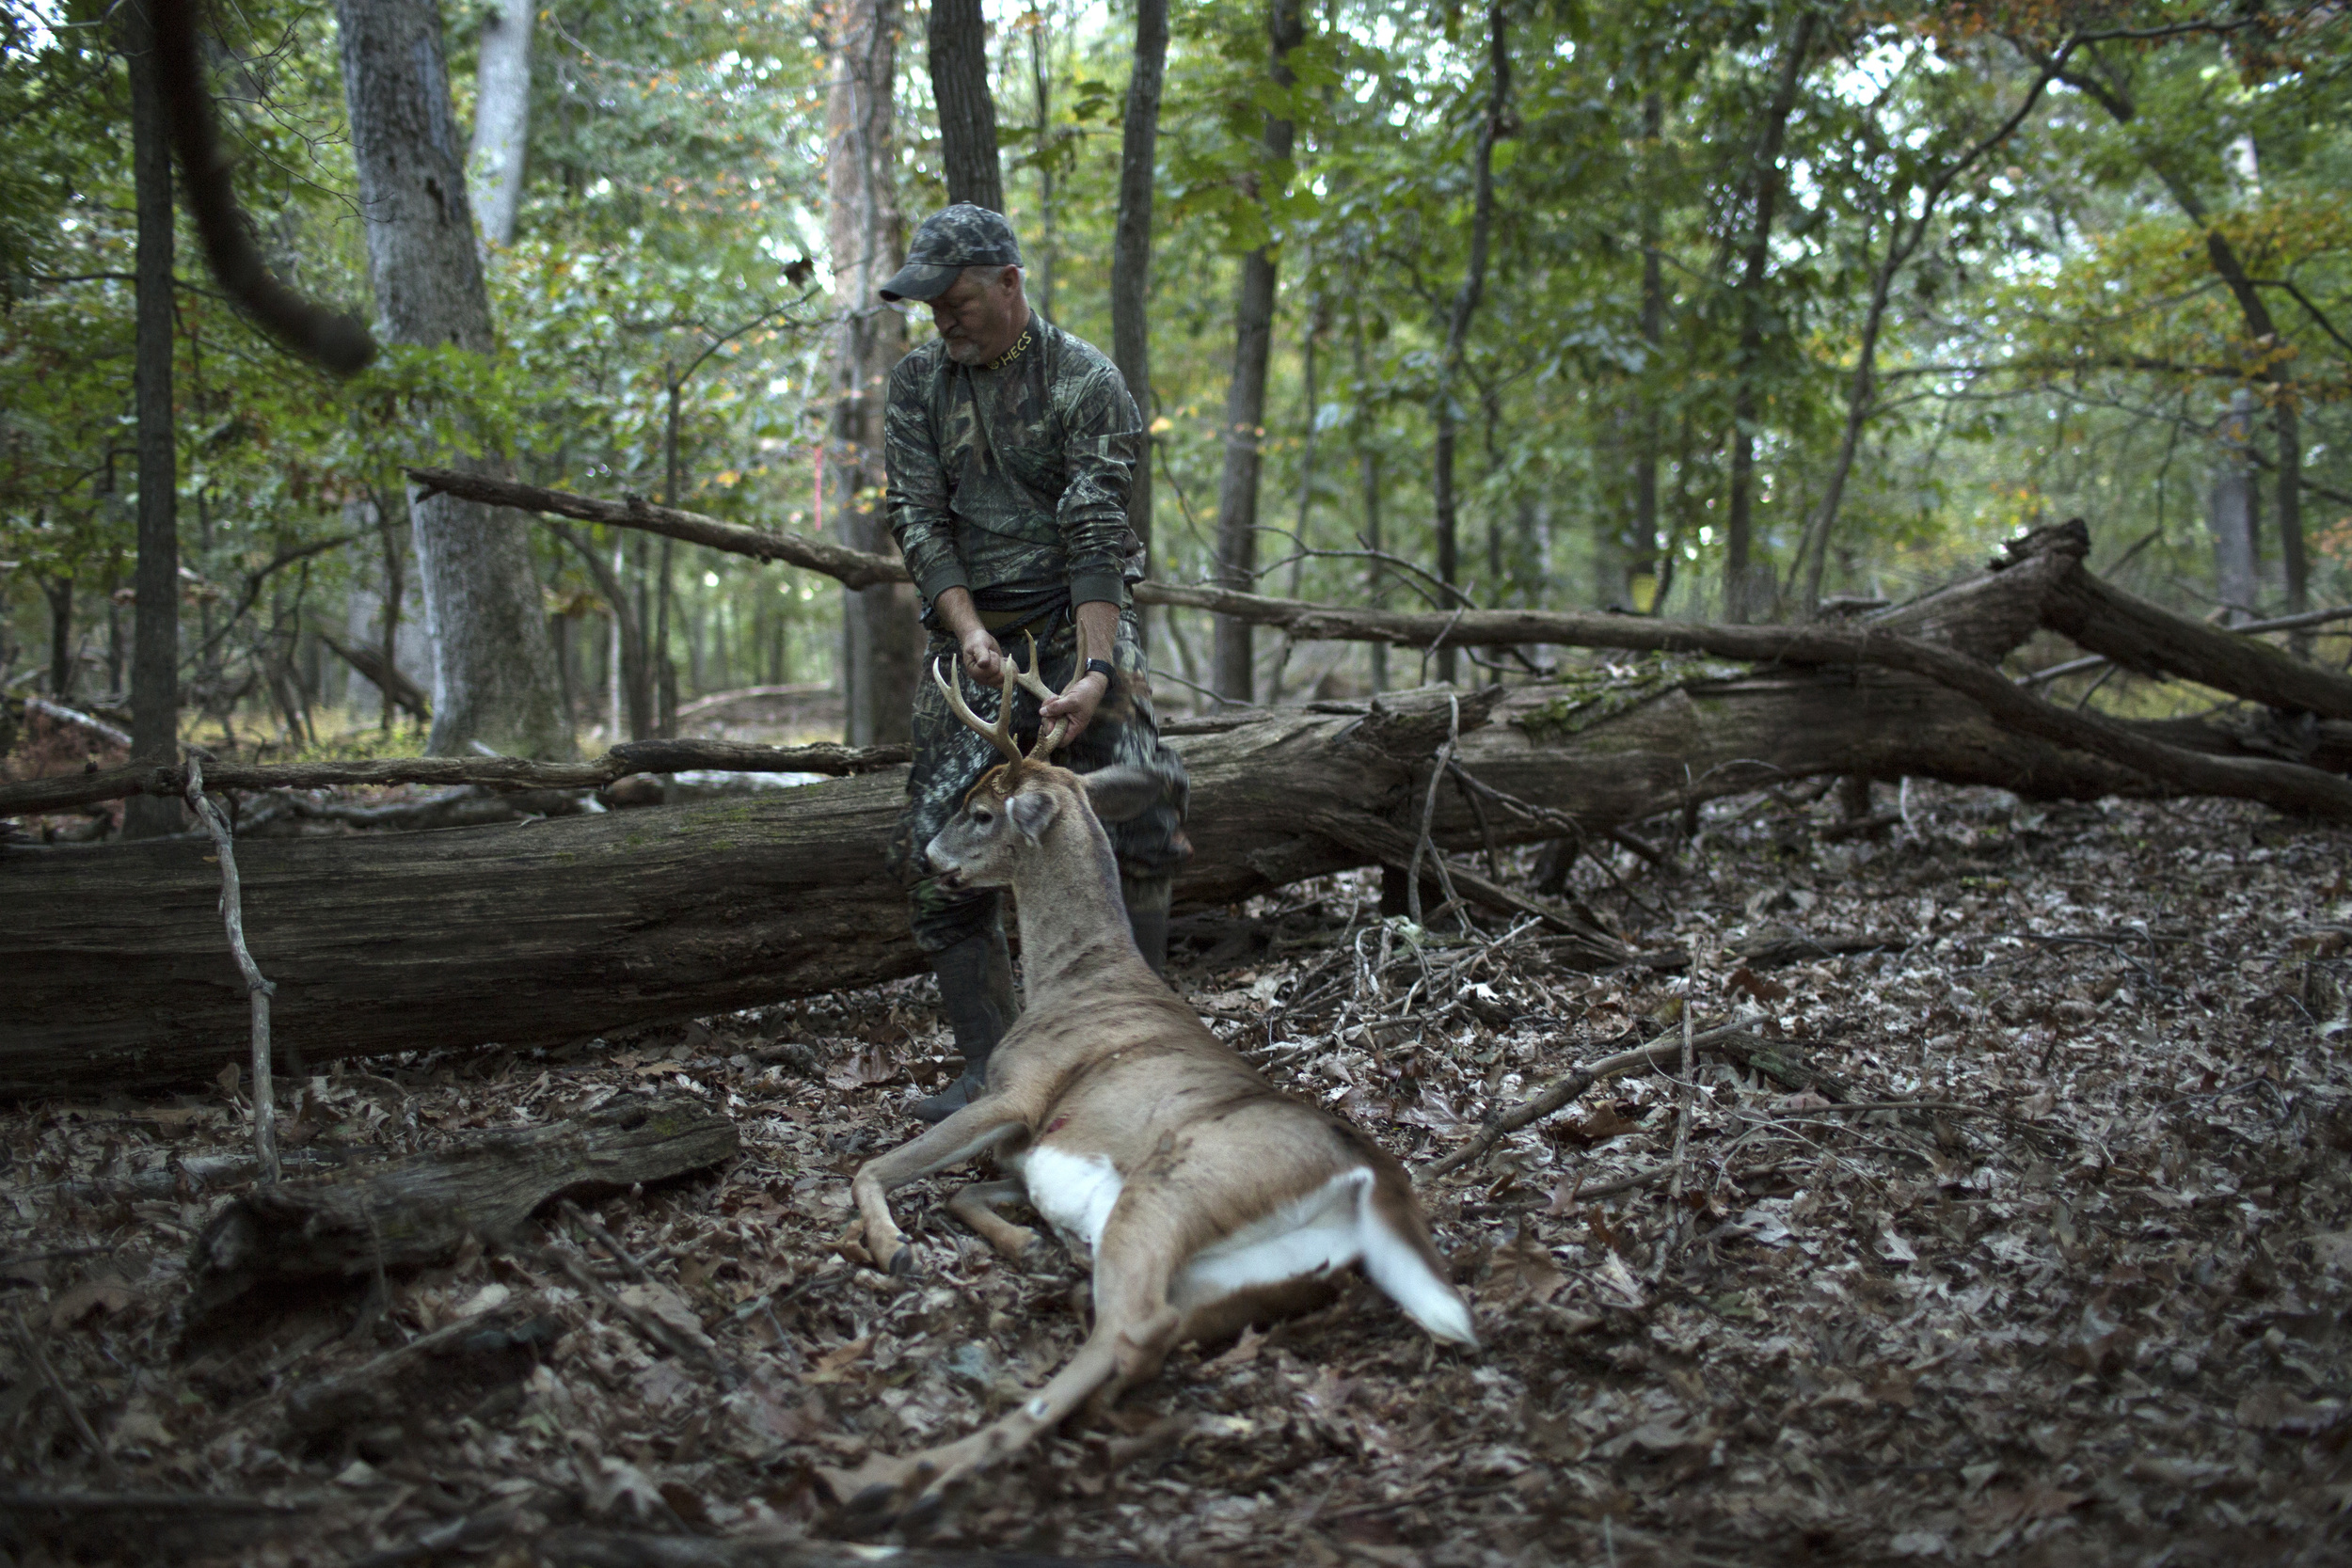 Tracy drags a recently killed deer before dressing it, near Eldersburg, Maryland.